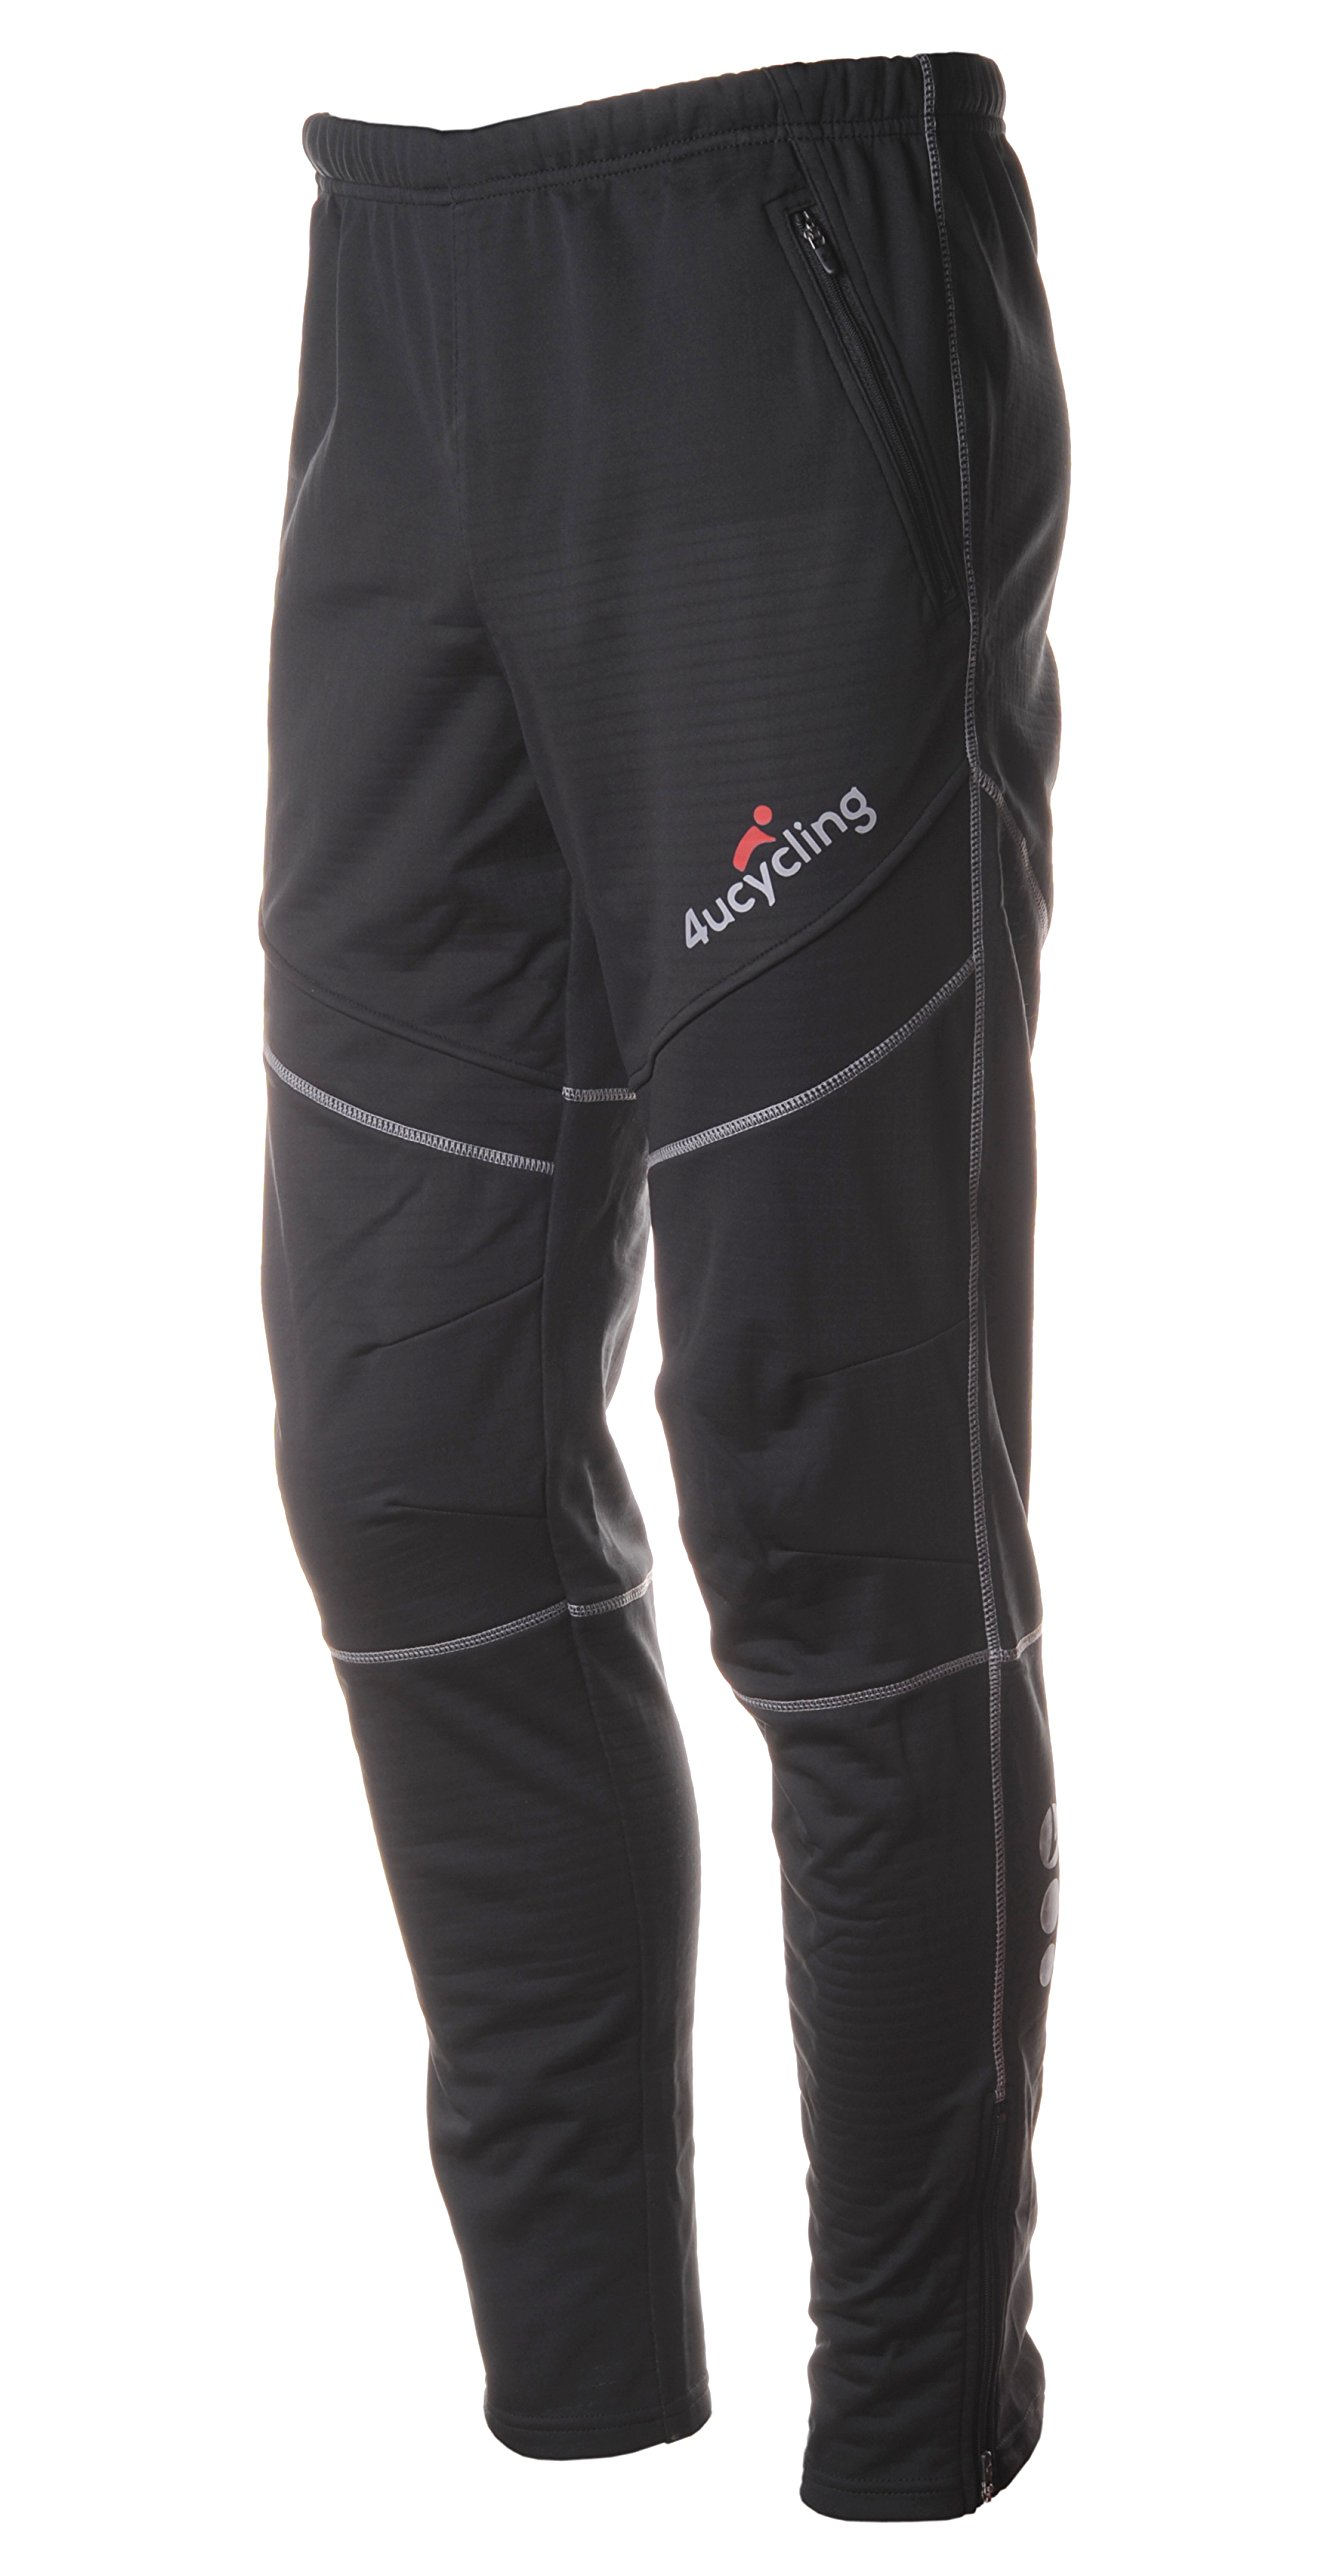 4ucycling Windproof Athletic Pants for Outdoor and Multi Sports Black L-gangsuo by 4ucycling (Image #1)